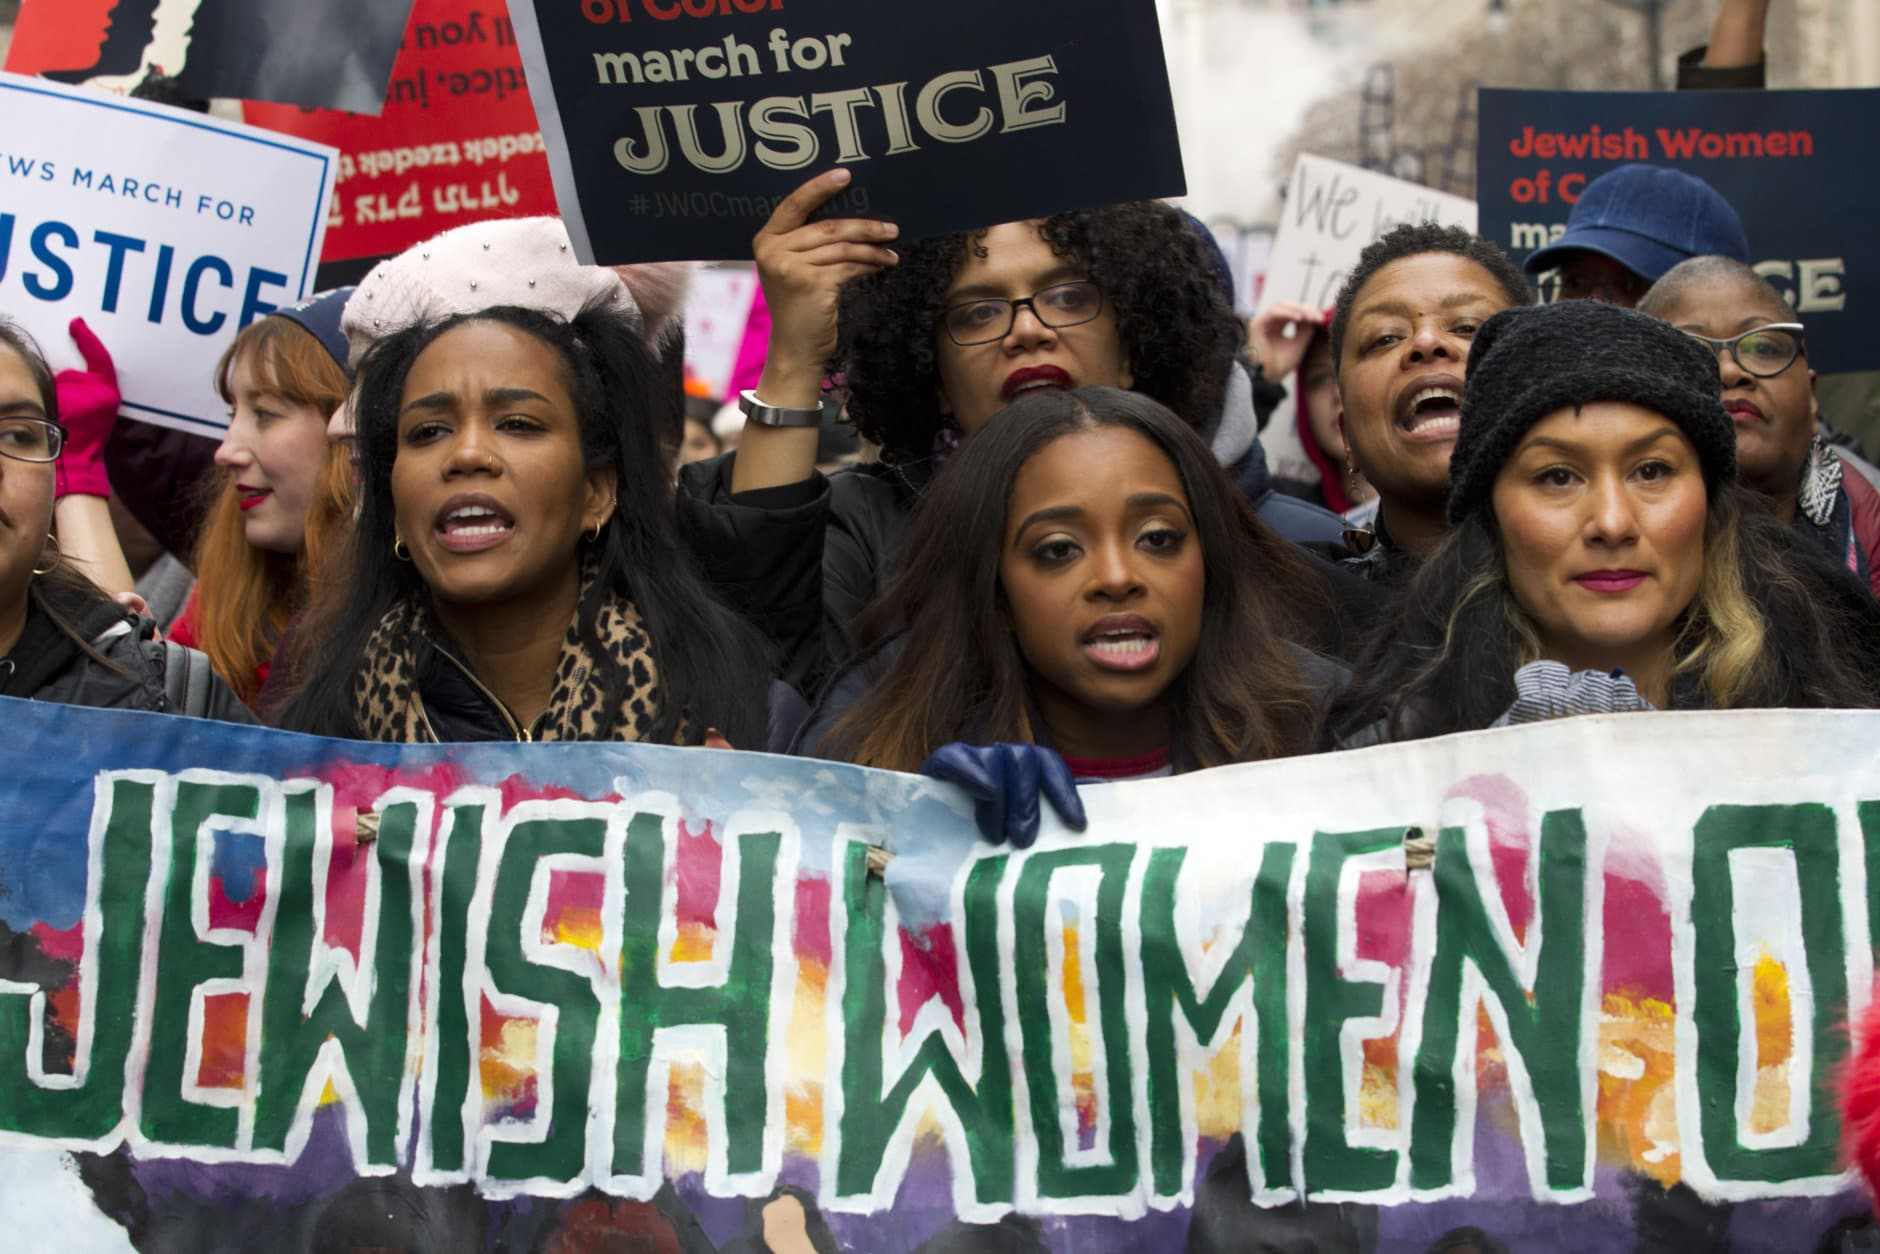 Co-president of the 2019 Women's March, Tamika Mallory, center, joins other demonstrators on Pennsylvania Avenue during the Women's March in Washington on Saturday, Jan. 19, 2019. (AP Photo/Jose Luis Magana)